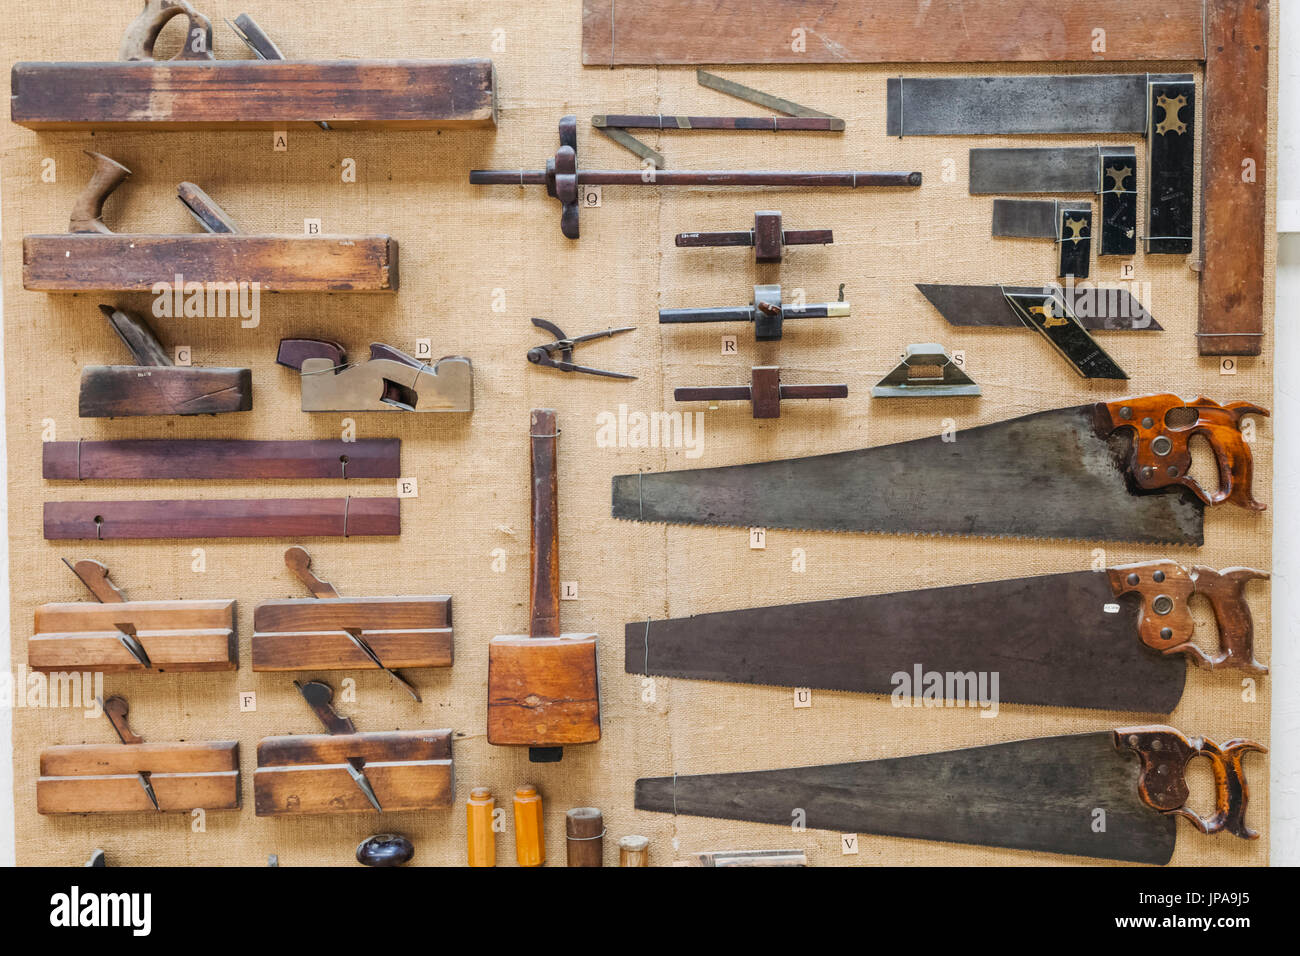 England, West Sussex, Singleton, Weald and Downland Open Air Museum, Display of Historical Carpenters Tools - Stock Image